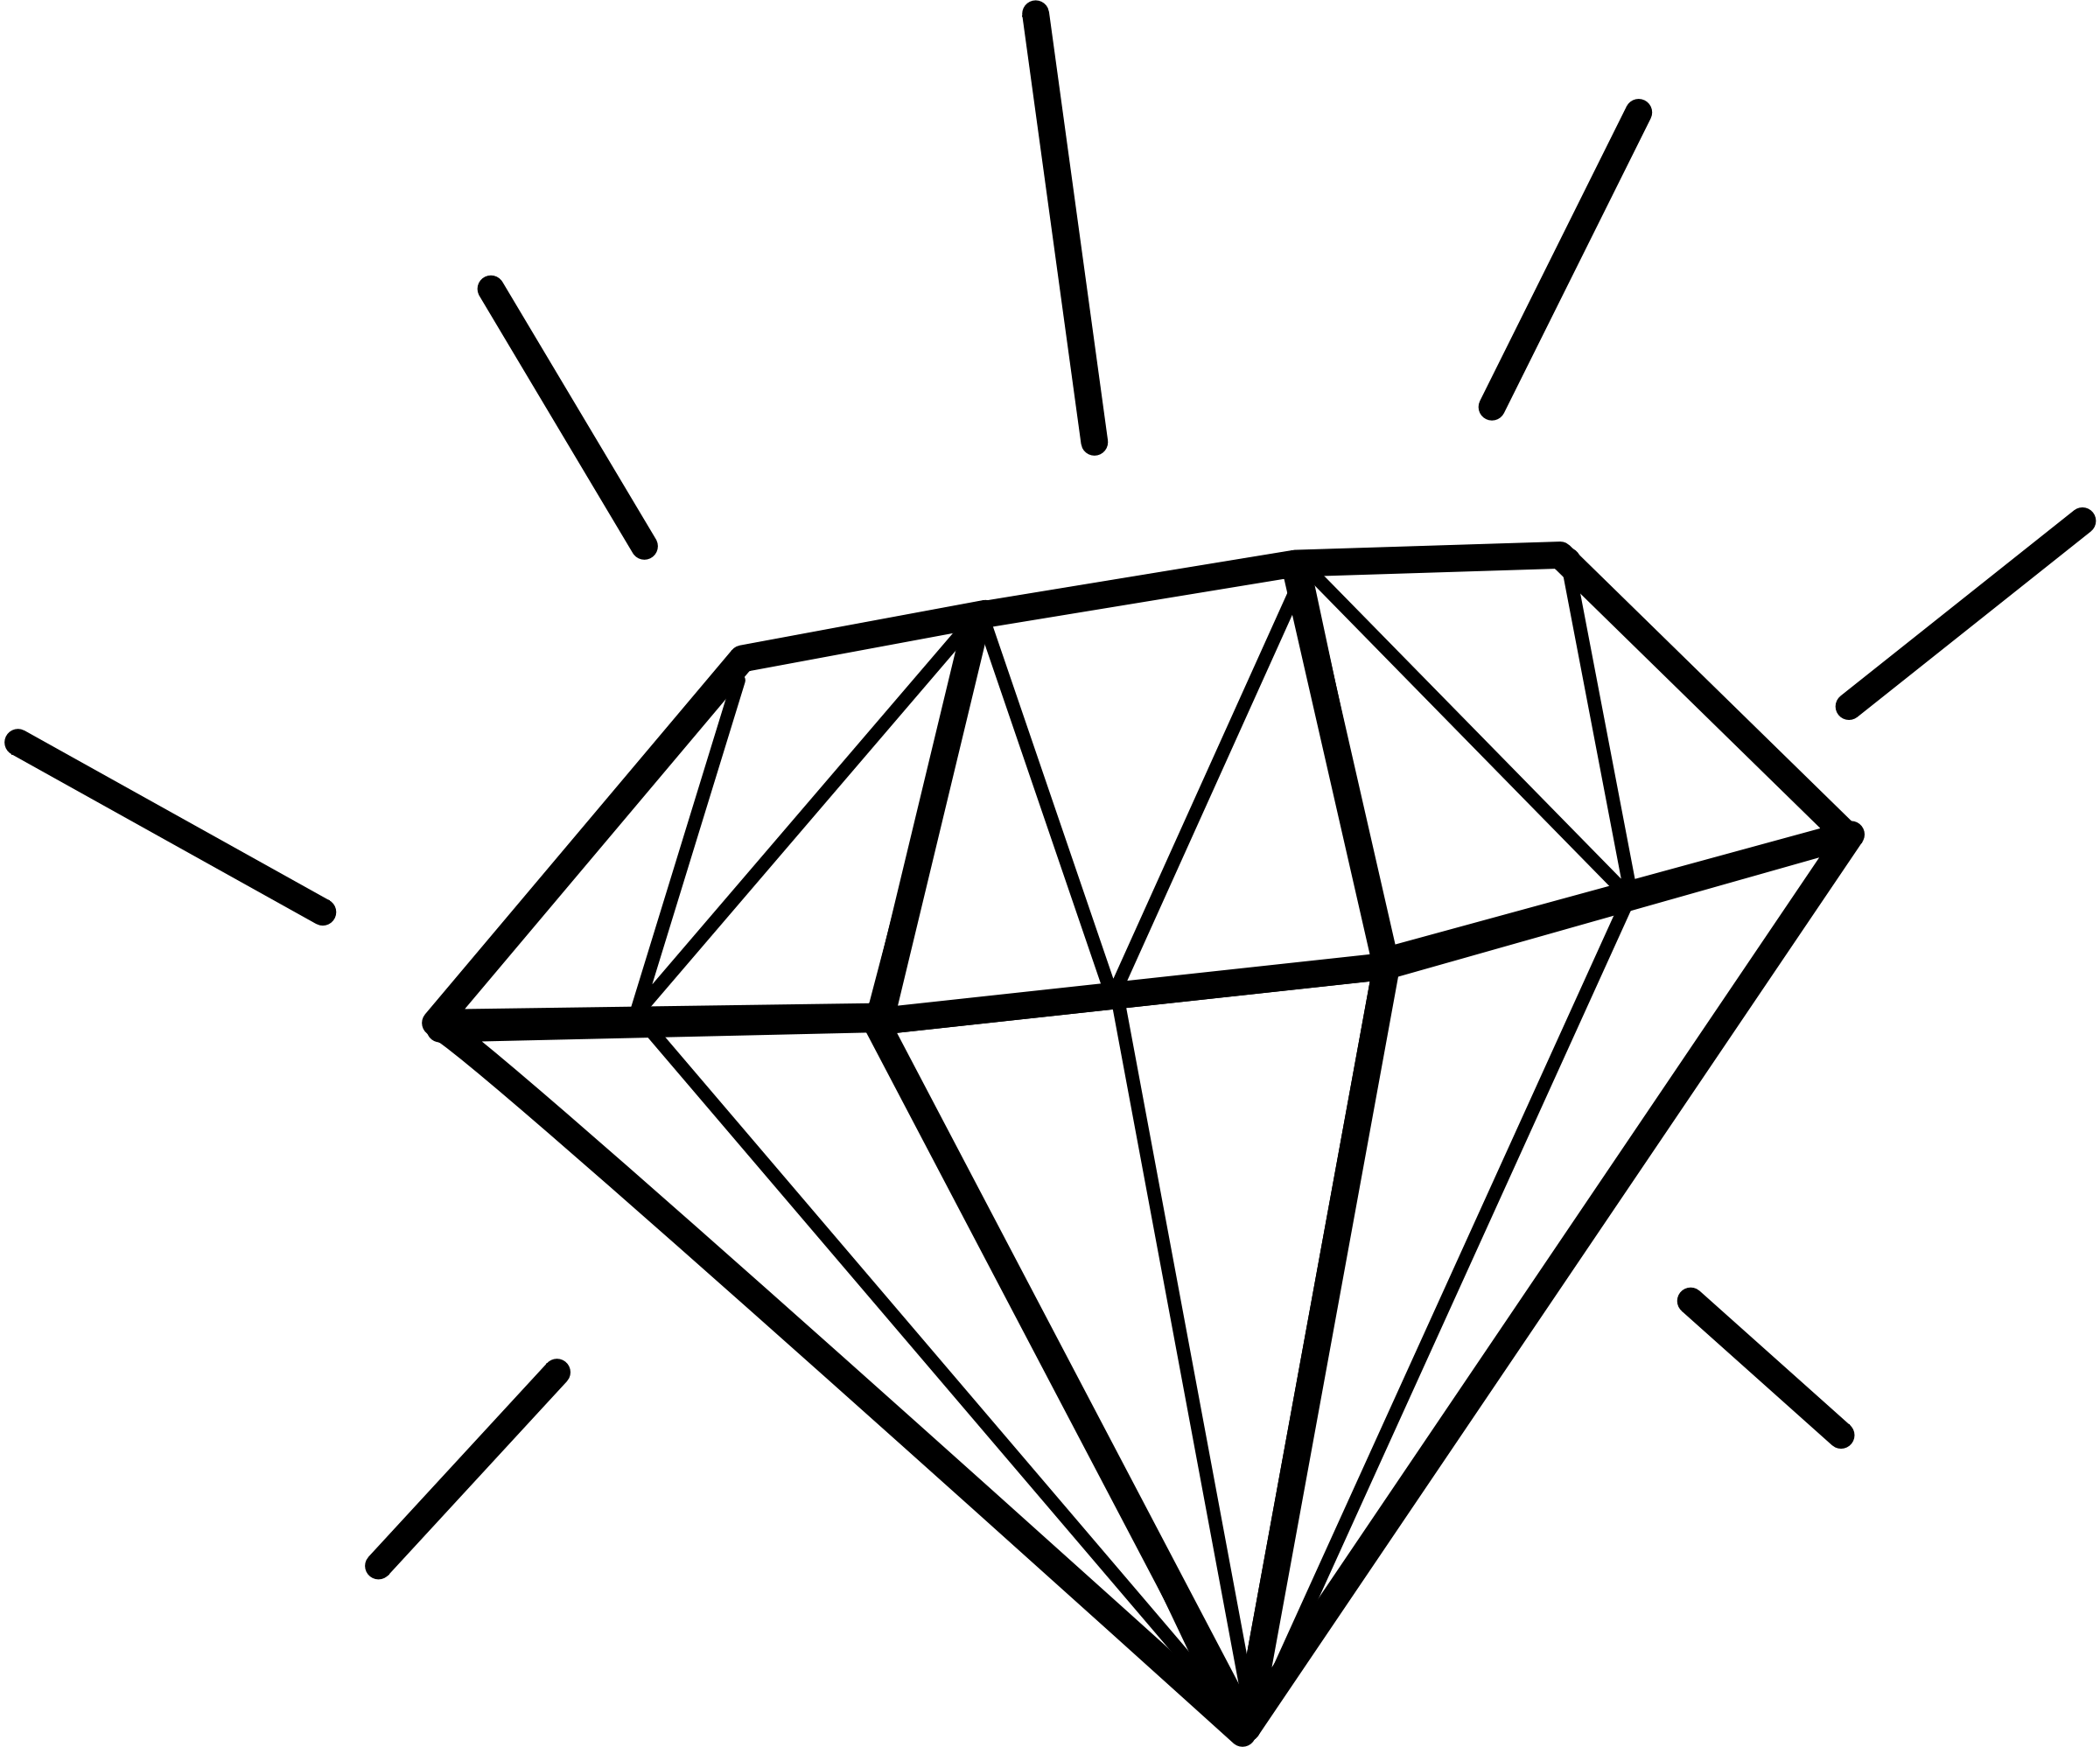 Diamonds clipart colouring page. Diamond drawing template at